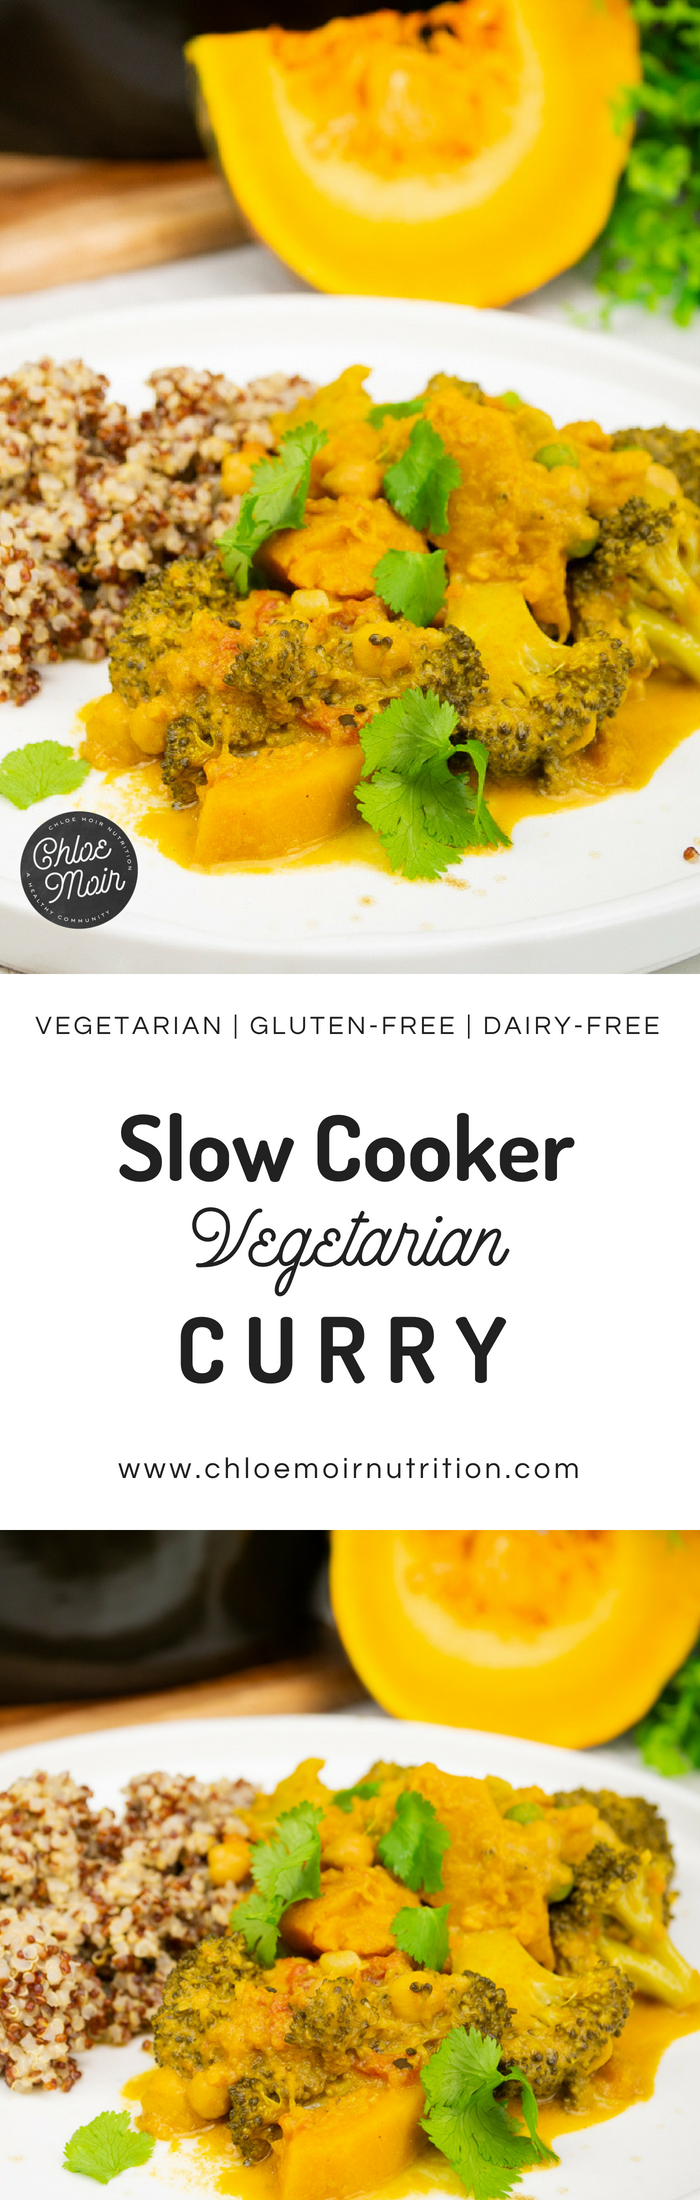 Slow Cooker Vegetarian Curry